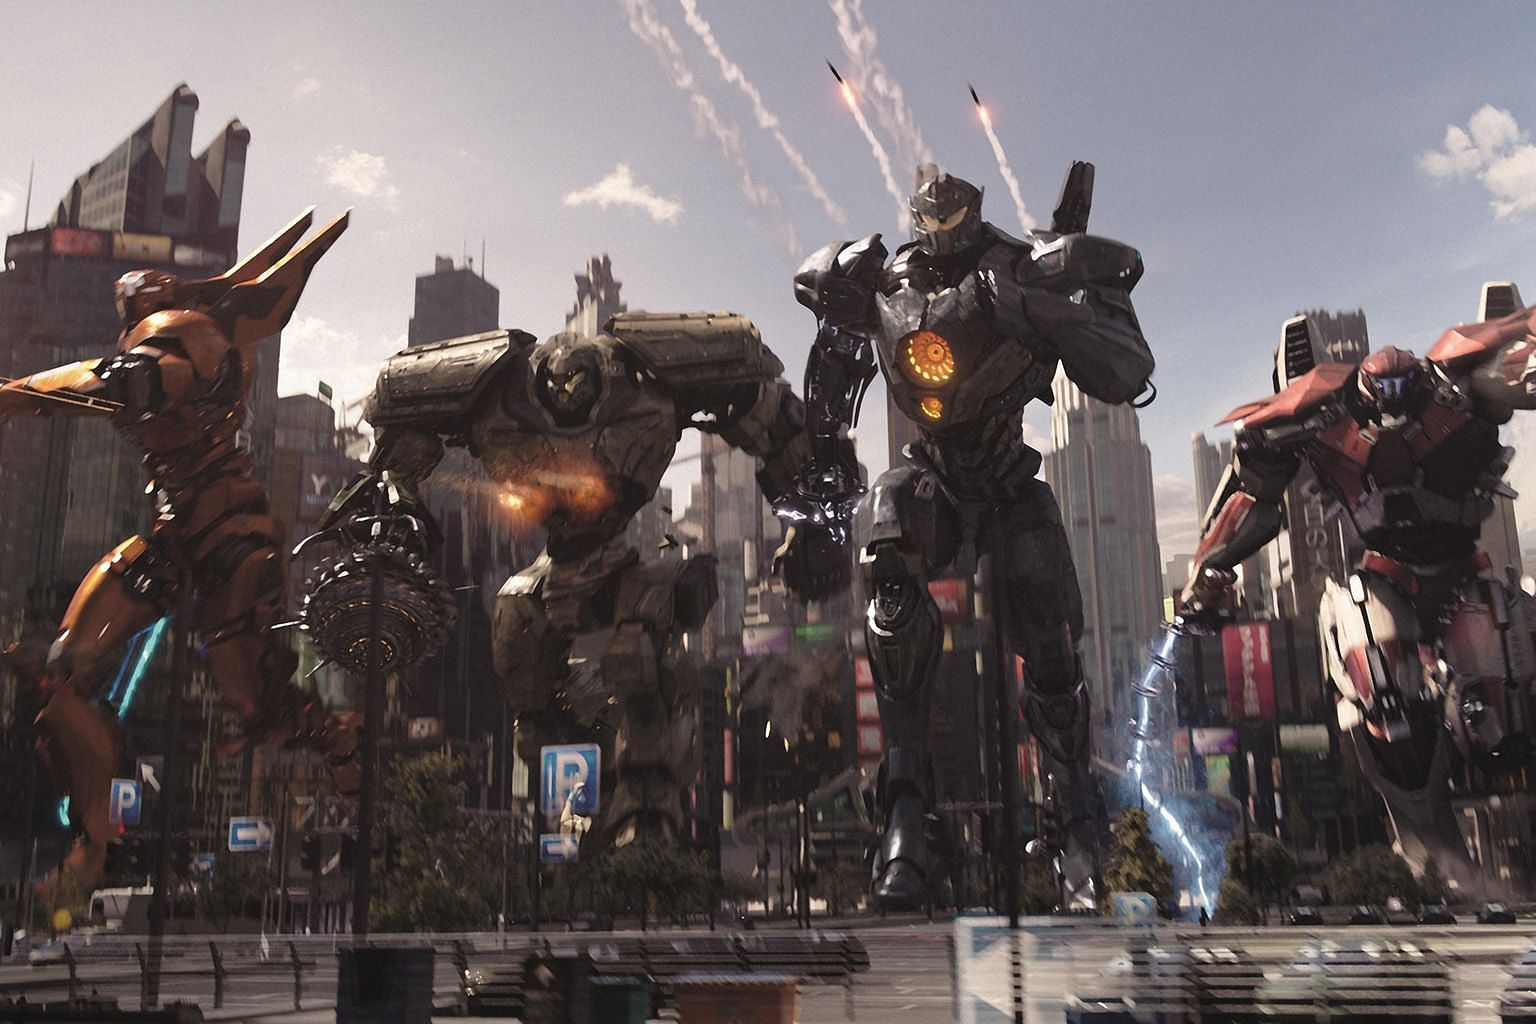 Films screening from Monday at various cinemas include re-releases such as action-science fiction film Pacific Rim: Uprising. PHOTO: UIP